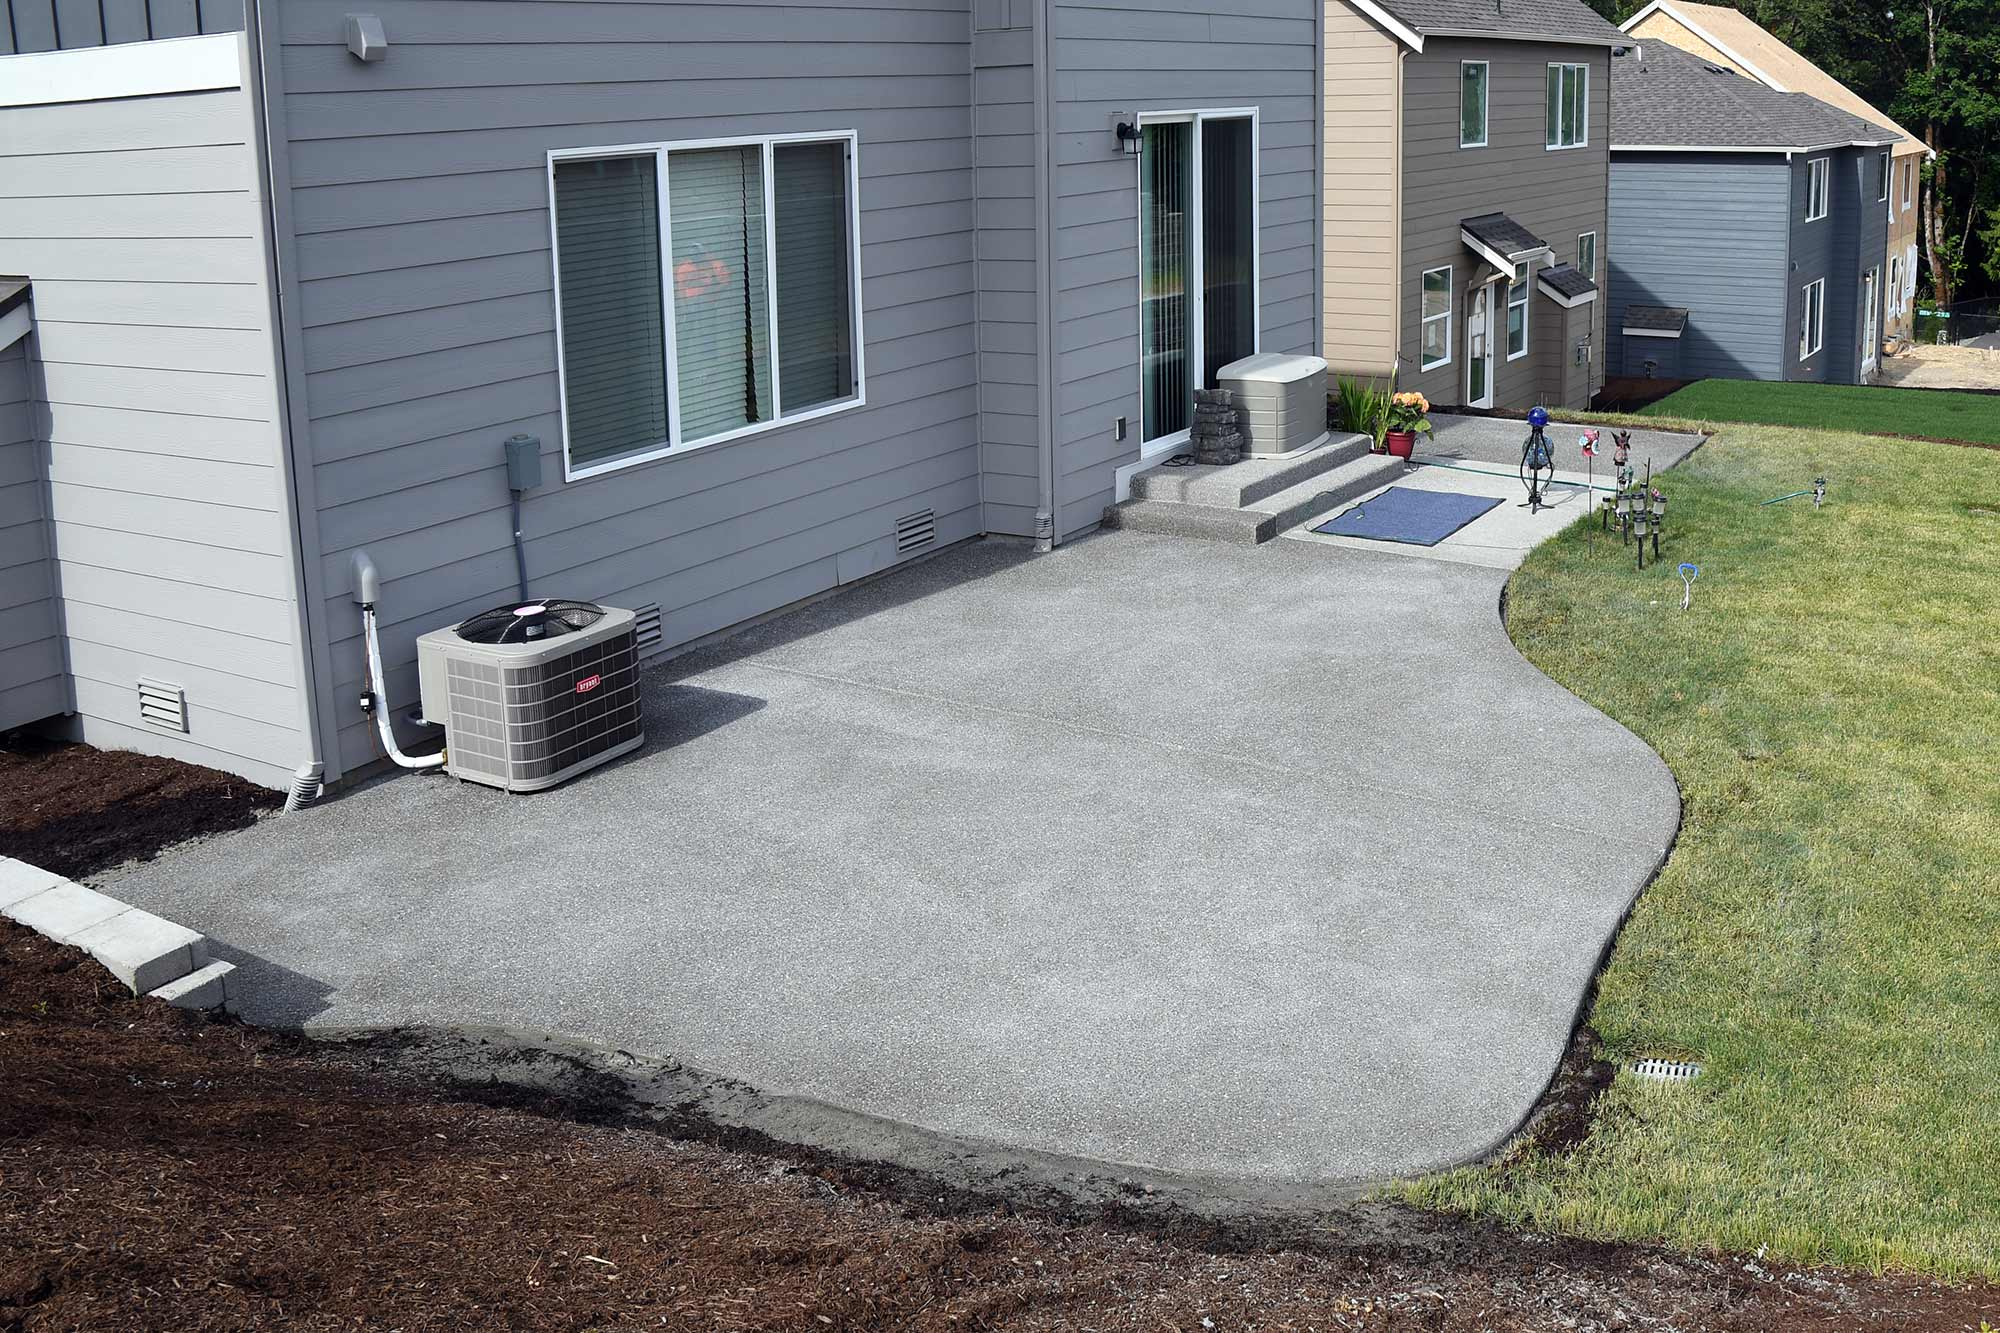 Exposed Aggregate Patio Extension Exposed Aggregate Patio Extension ...